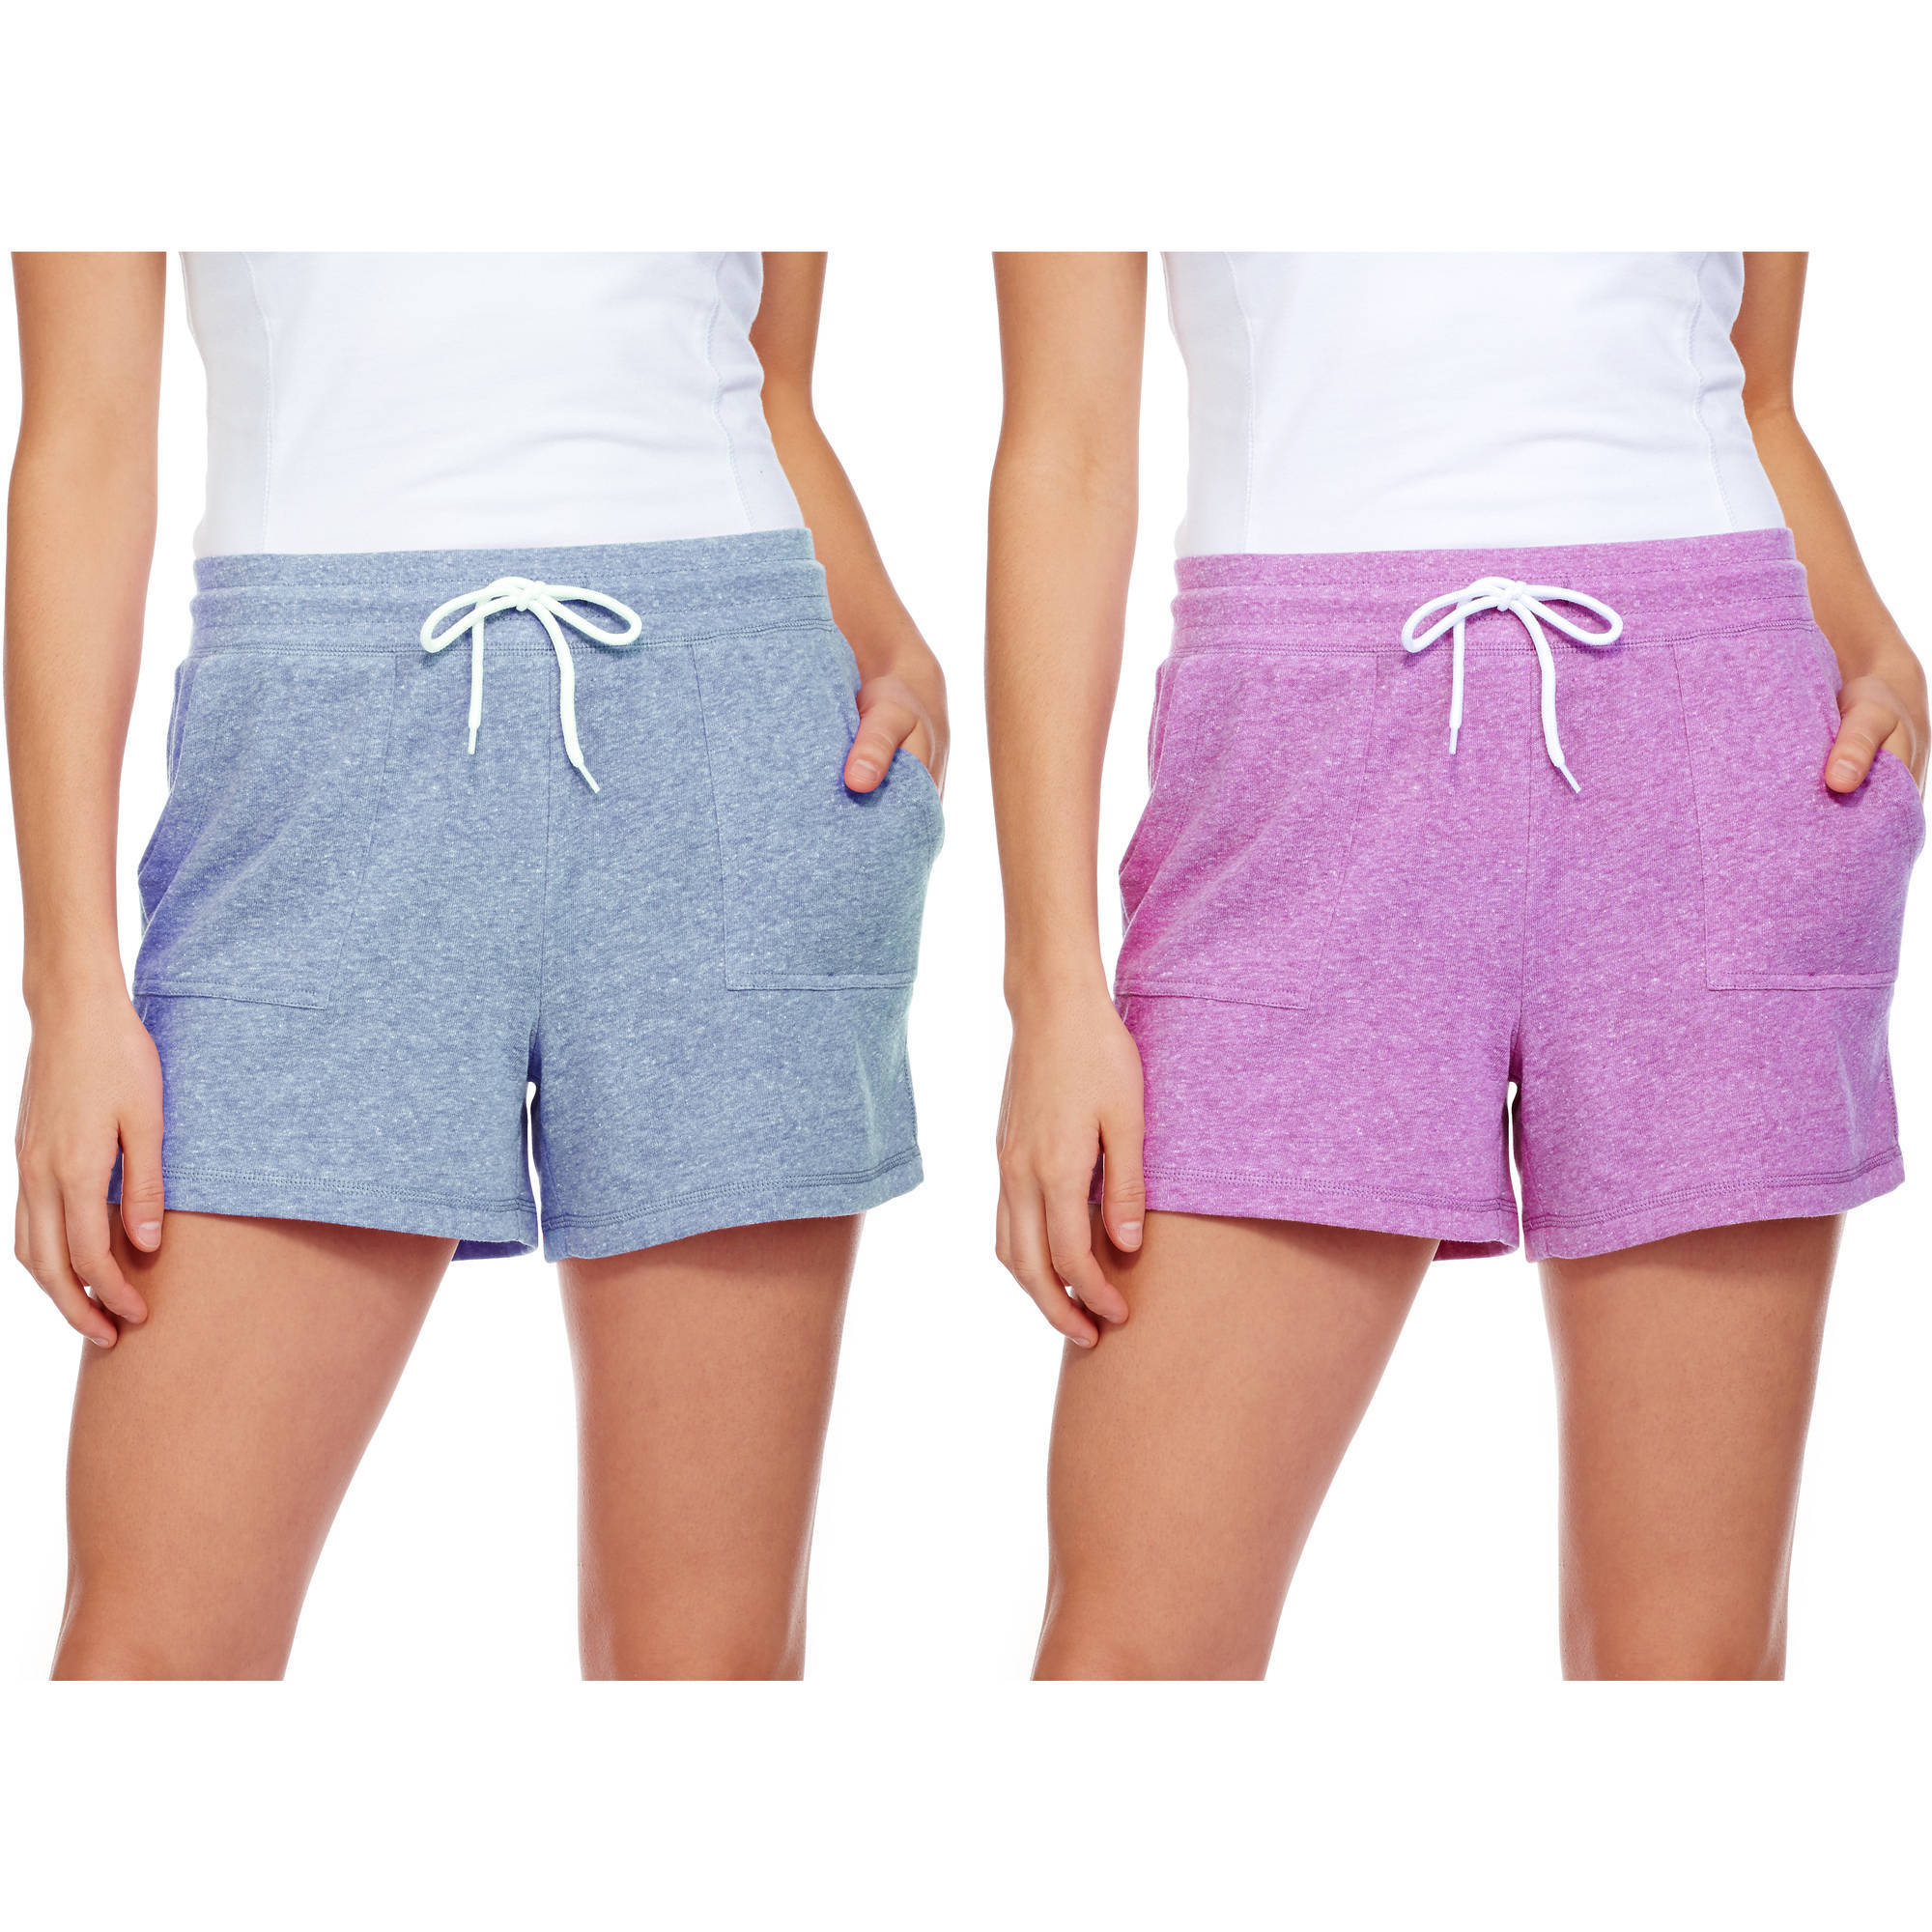 Athletic Works Women's Active Knit Gym Shorts, 2 Pack Value Bundle